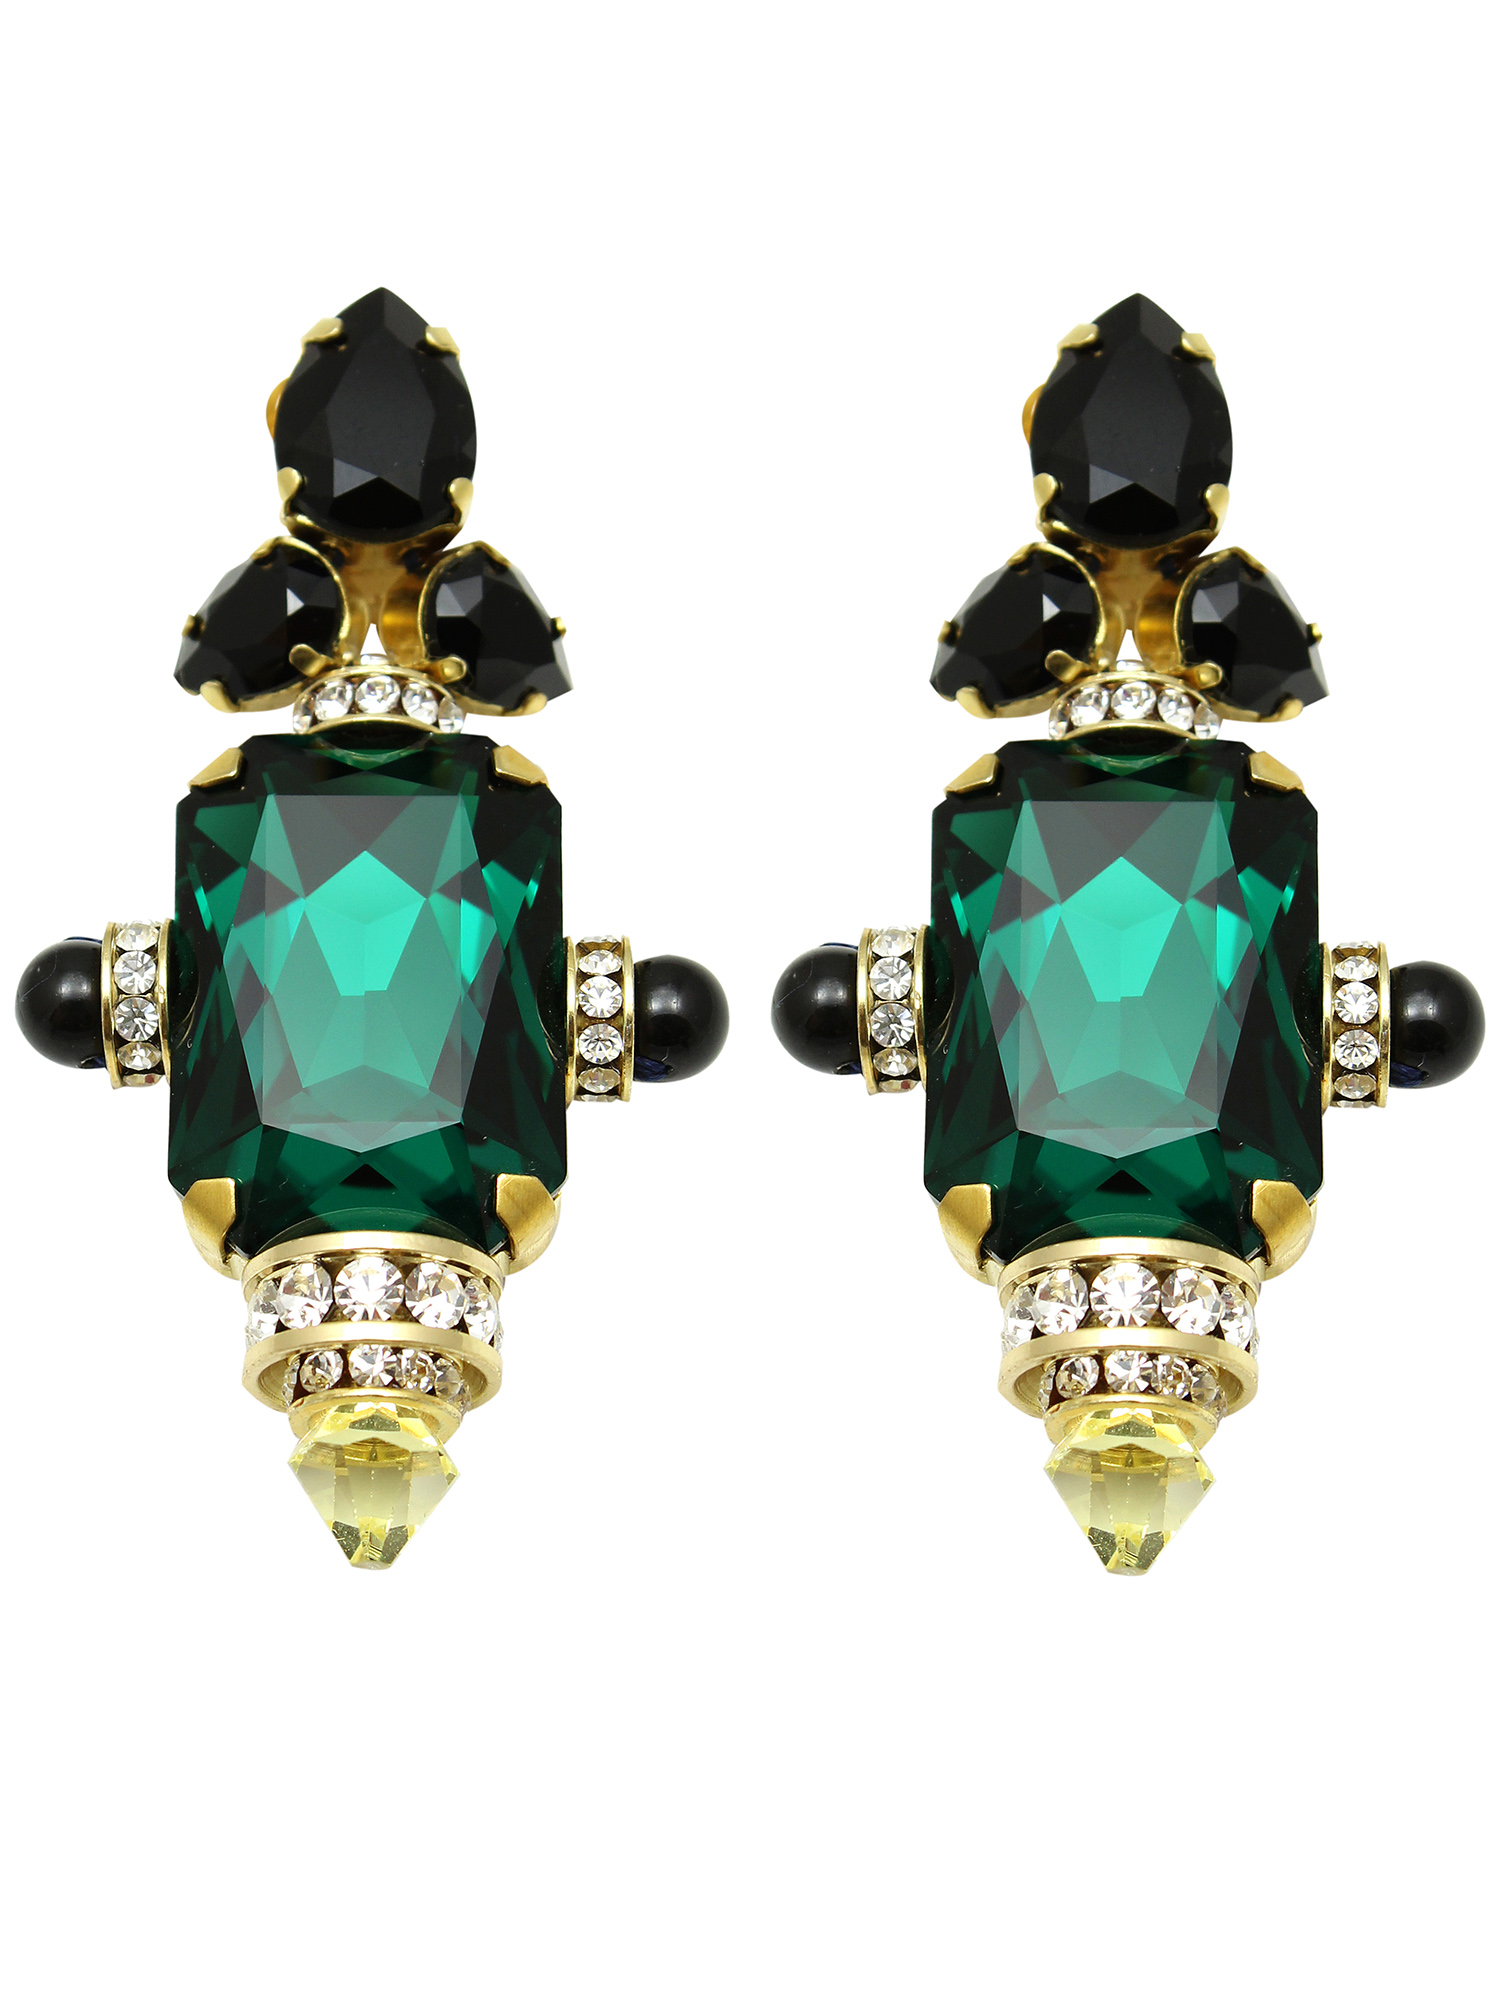 182E-GB Moscow Earrings - Green_Black.jpg